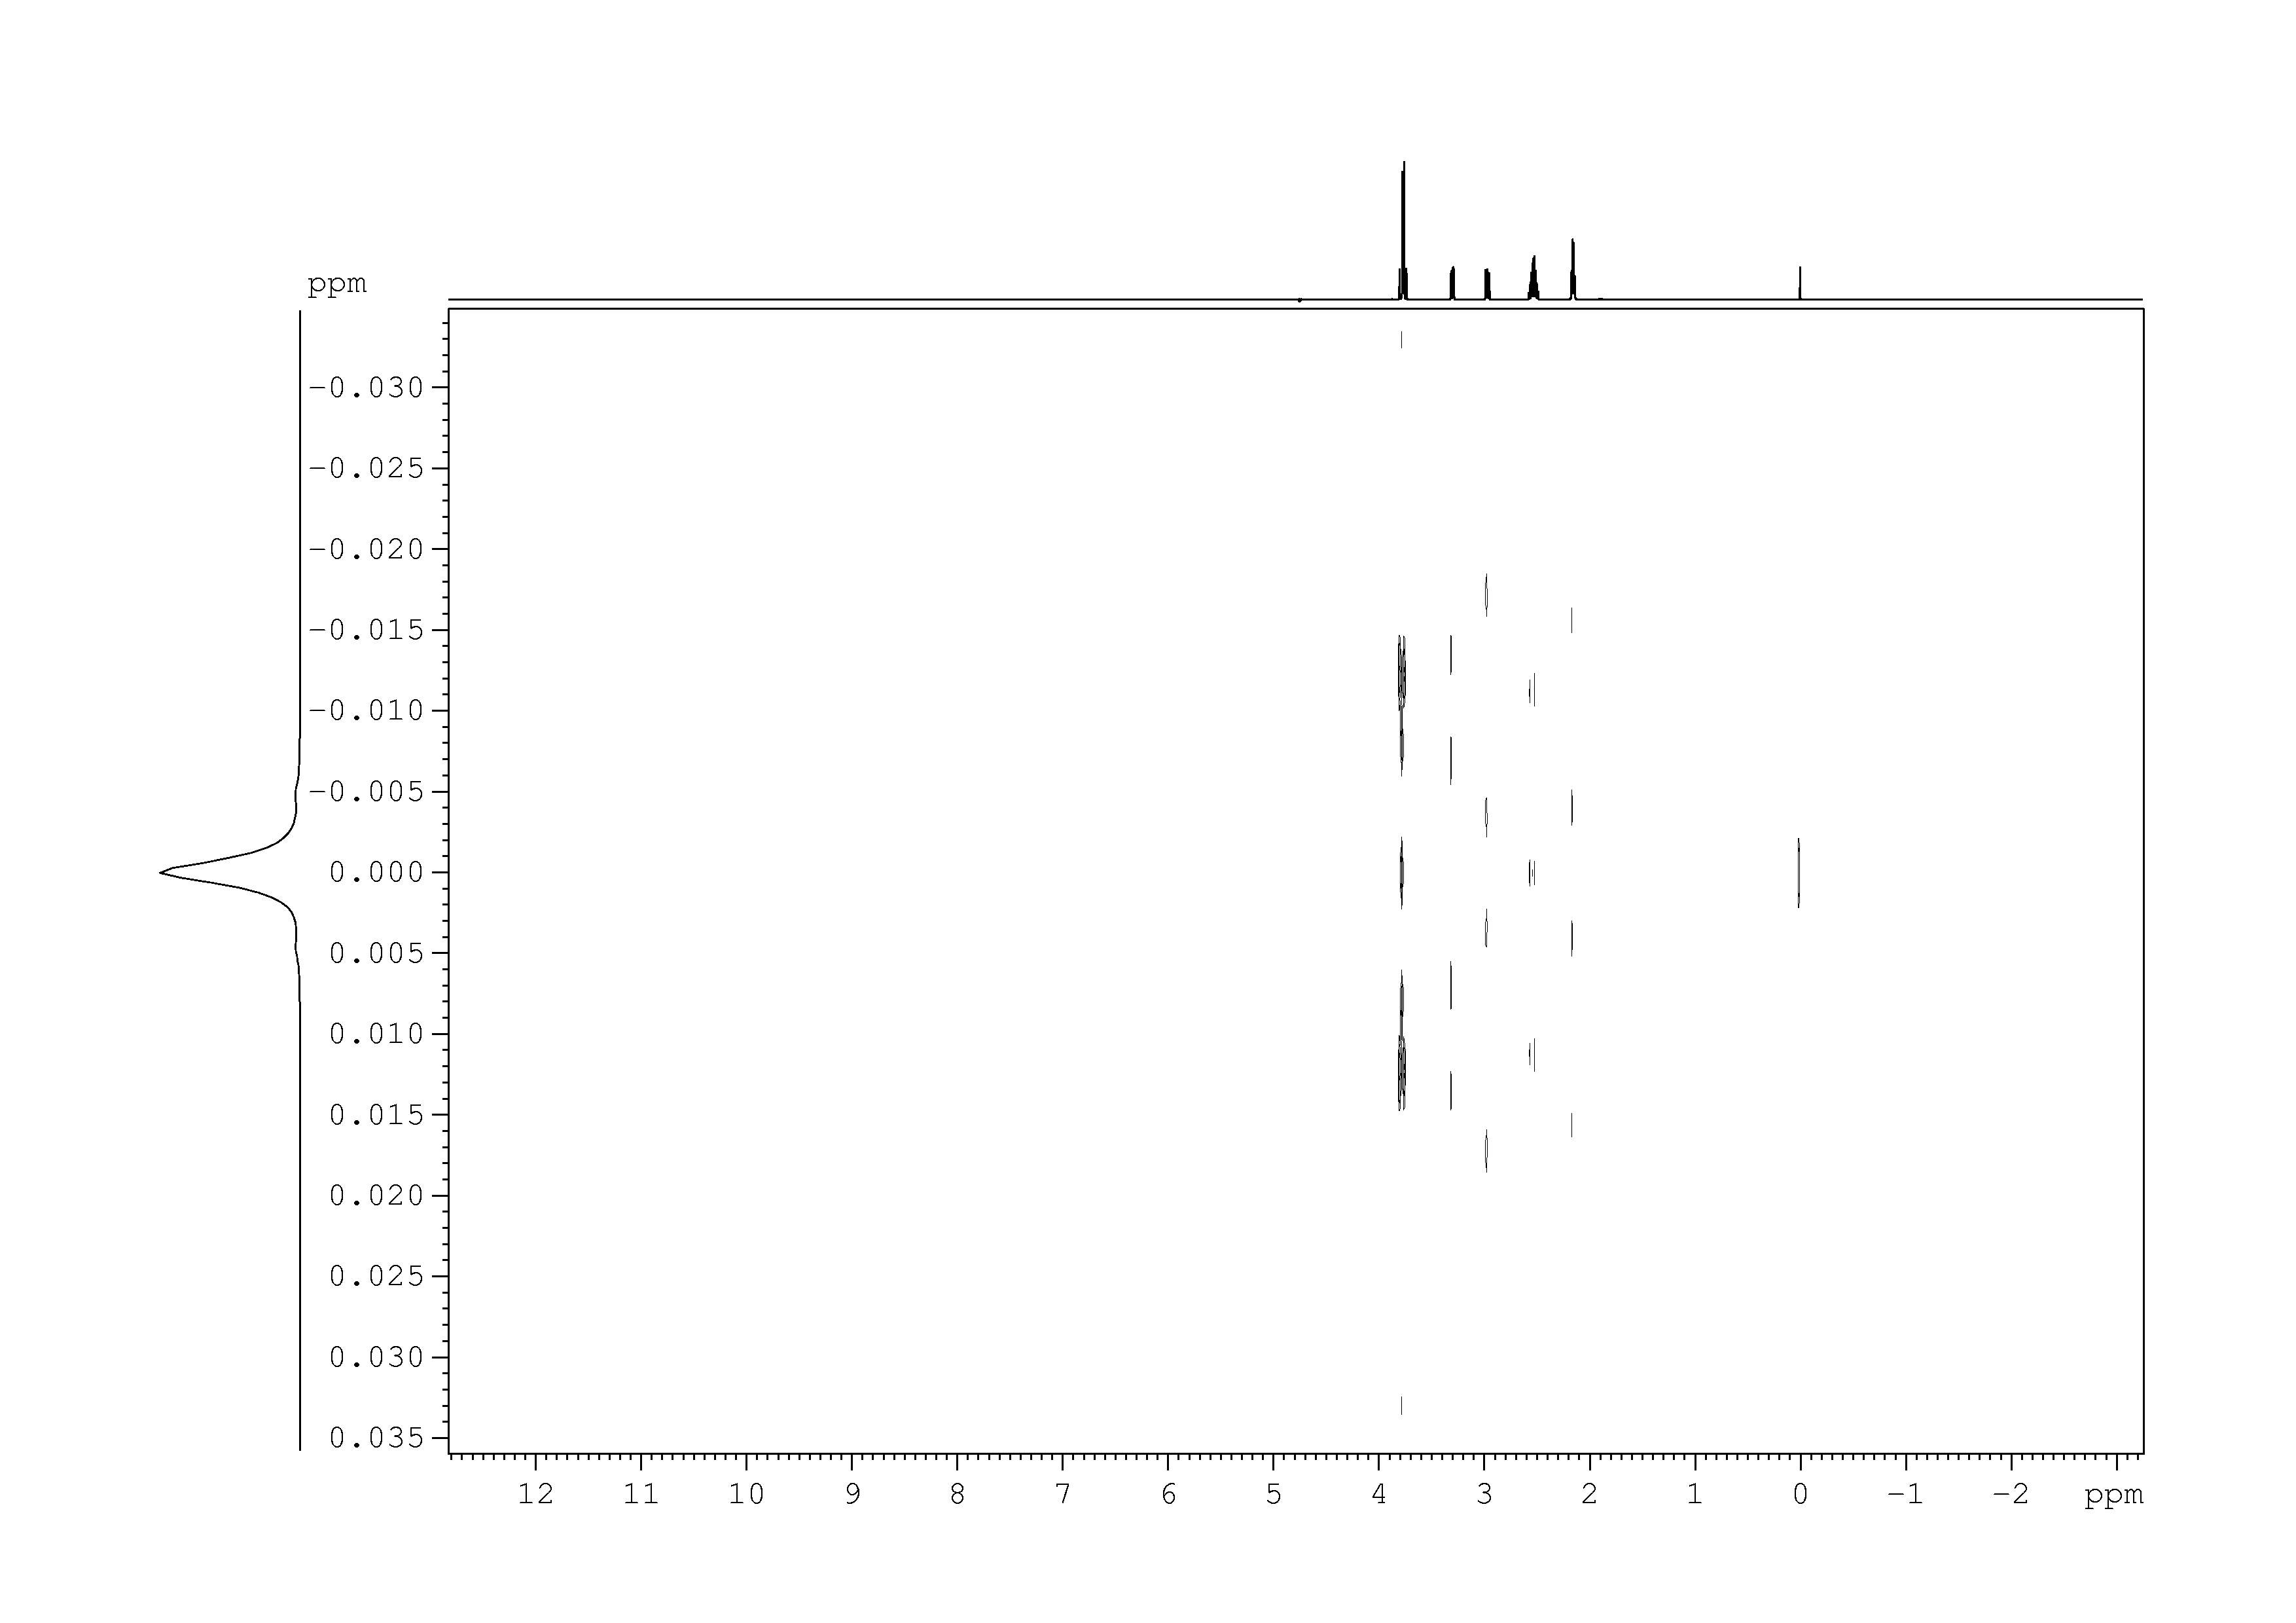 2D J-resolved 1H, 7.4 spectrum for L(-)-Glutathione, oxidized